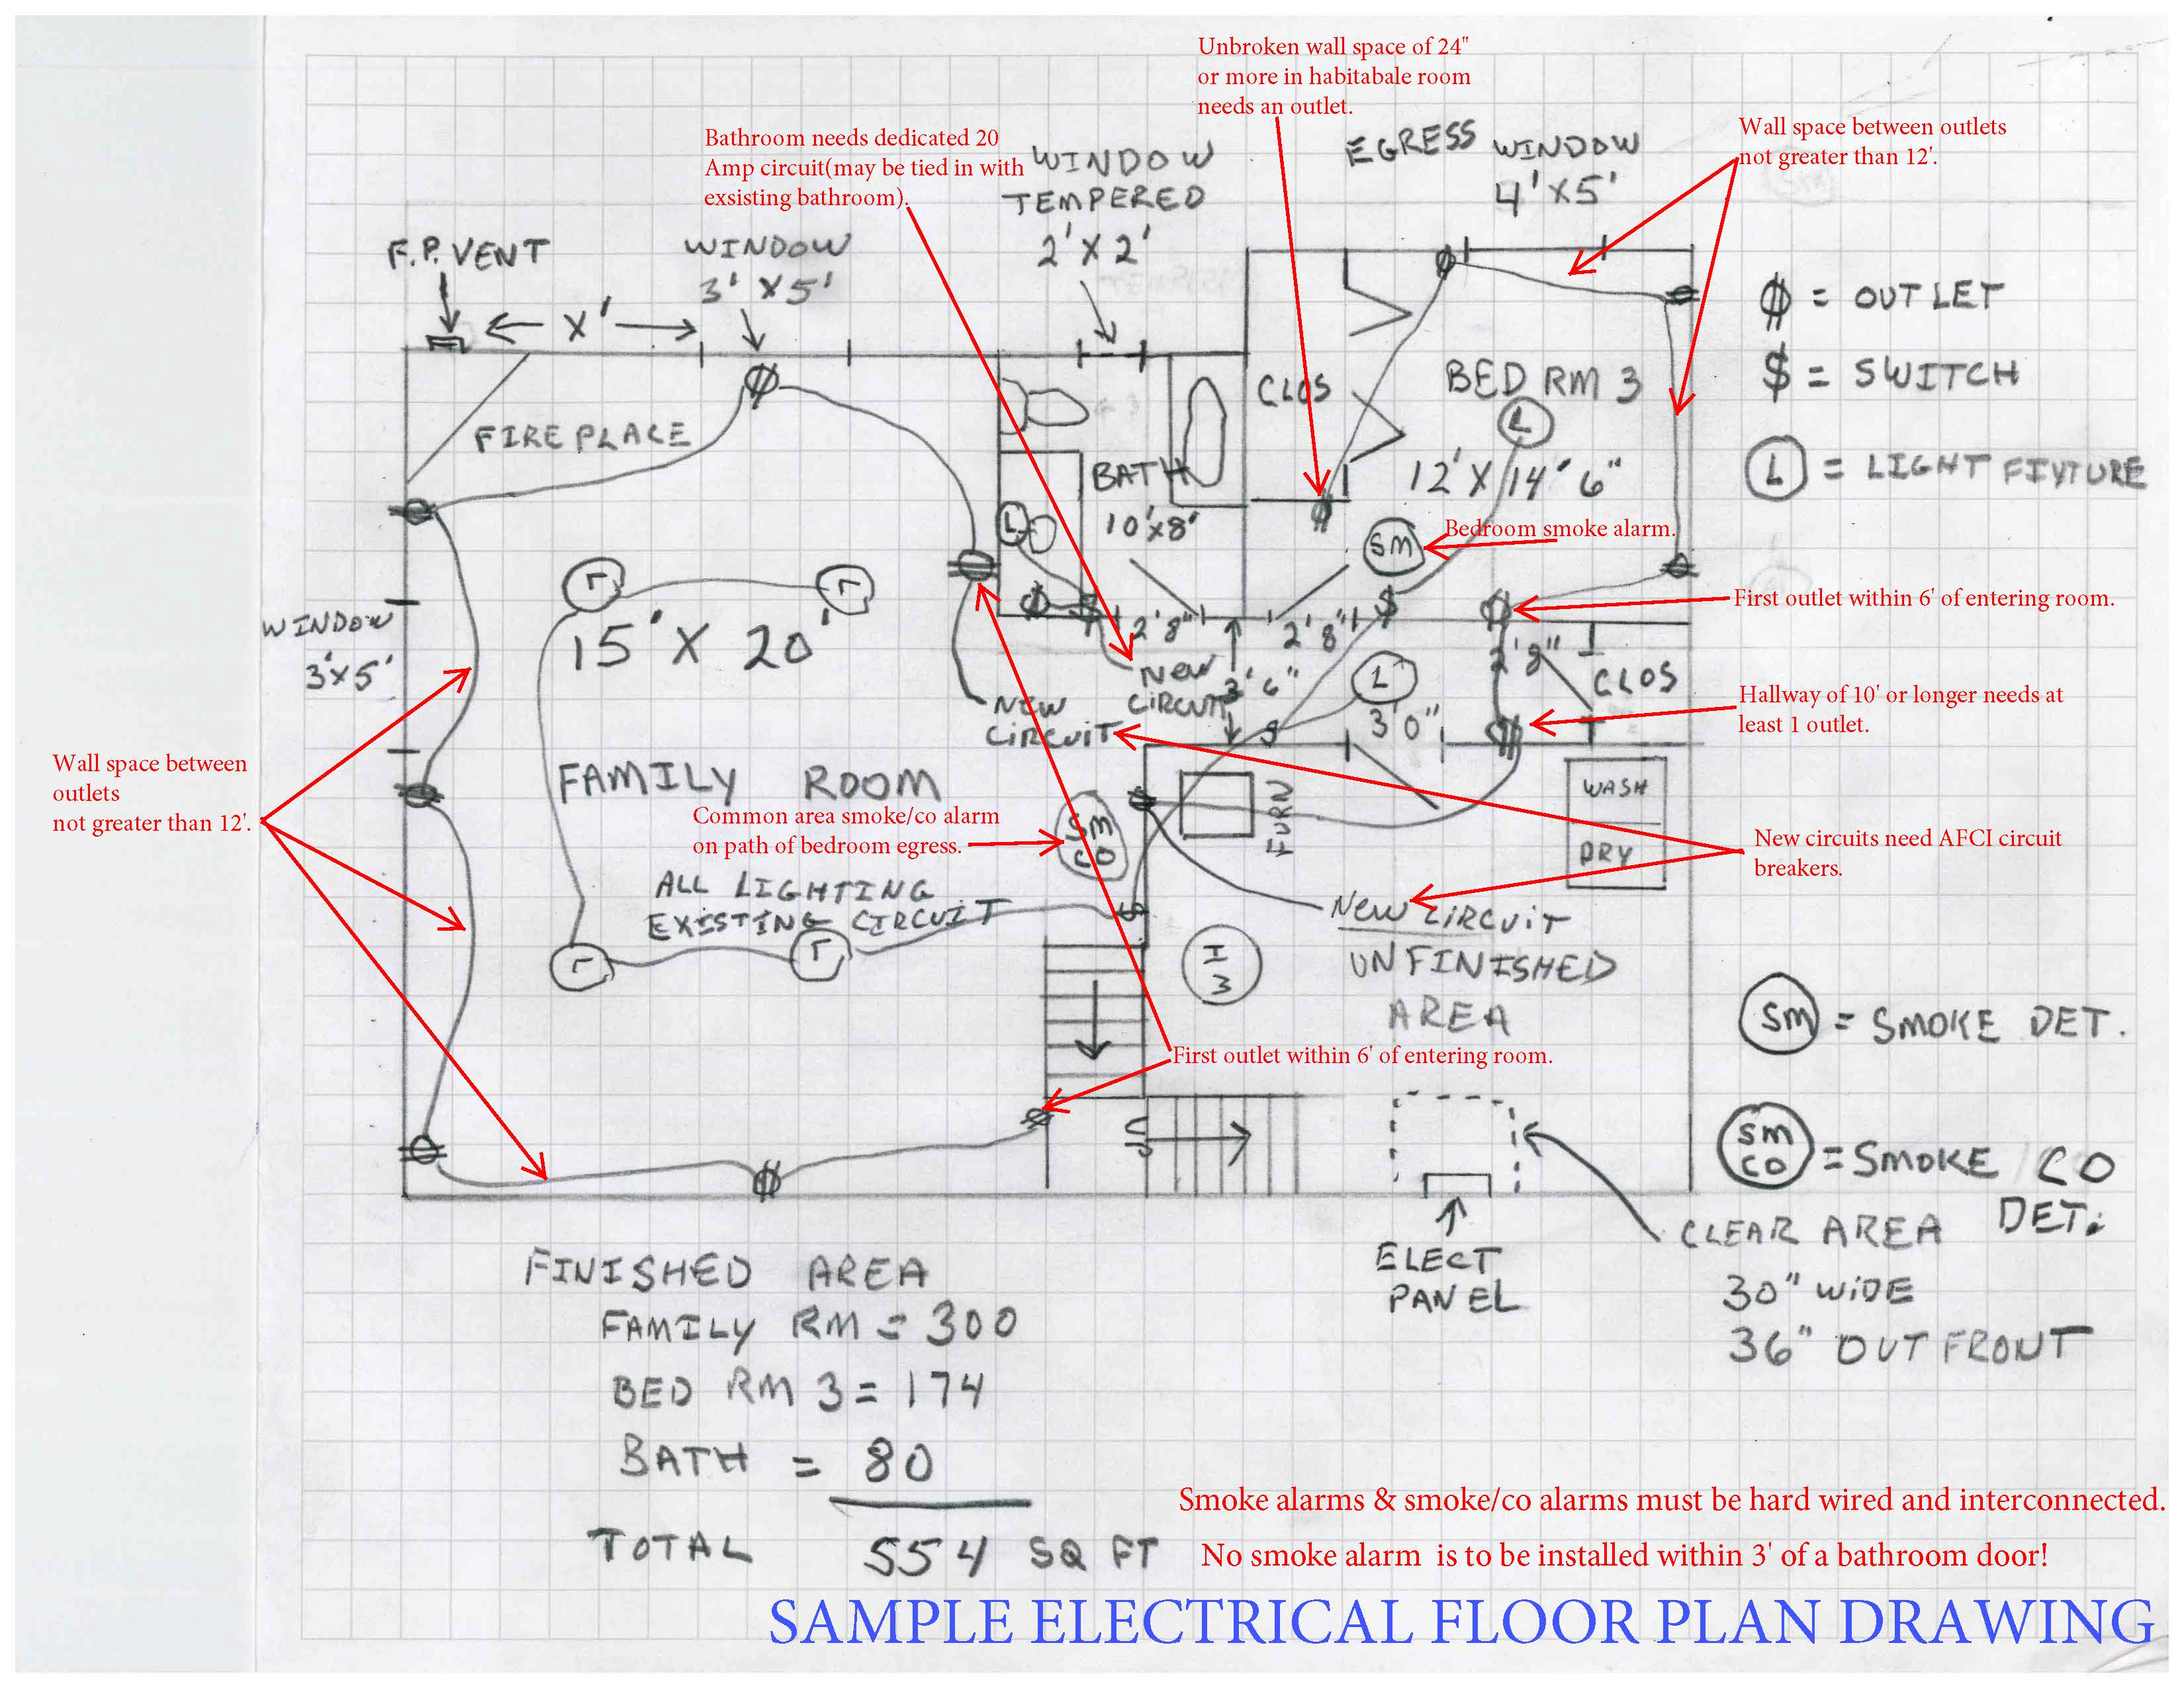 Sample electrical floor plan